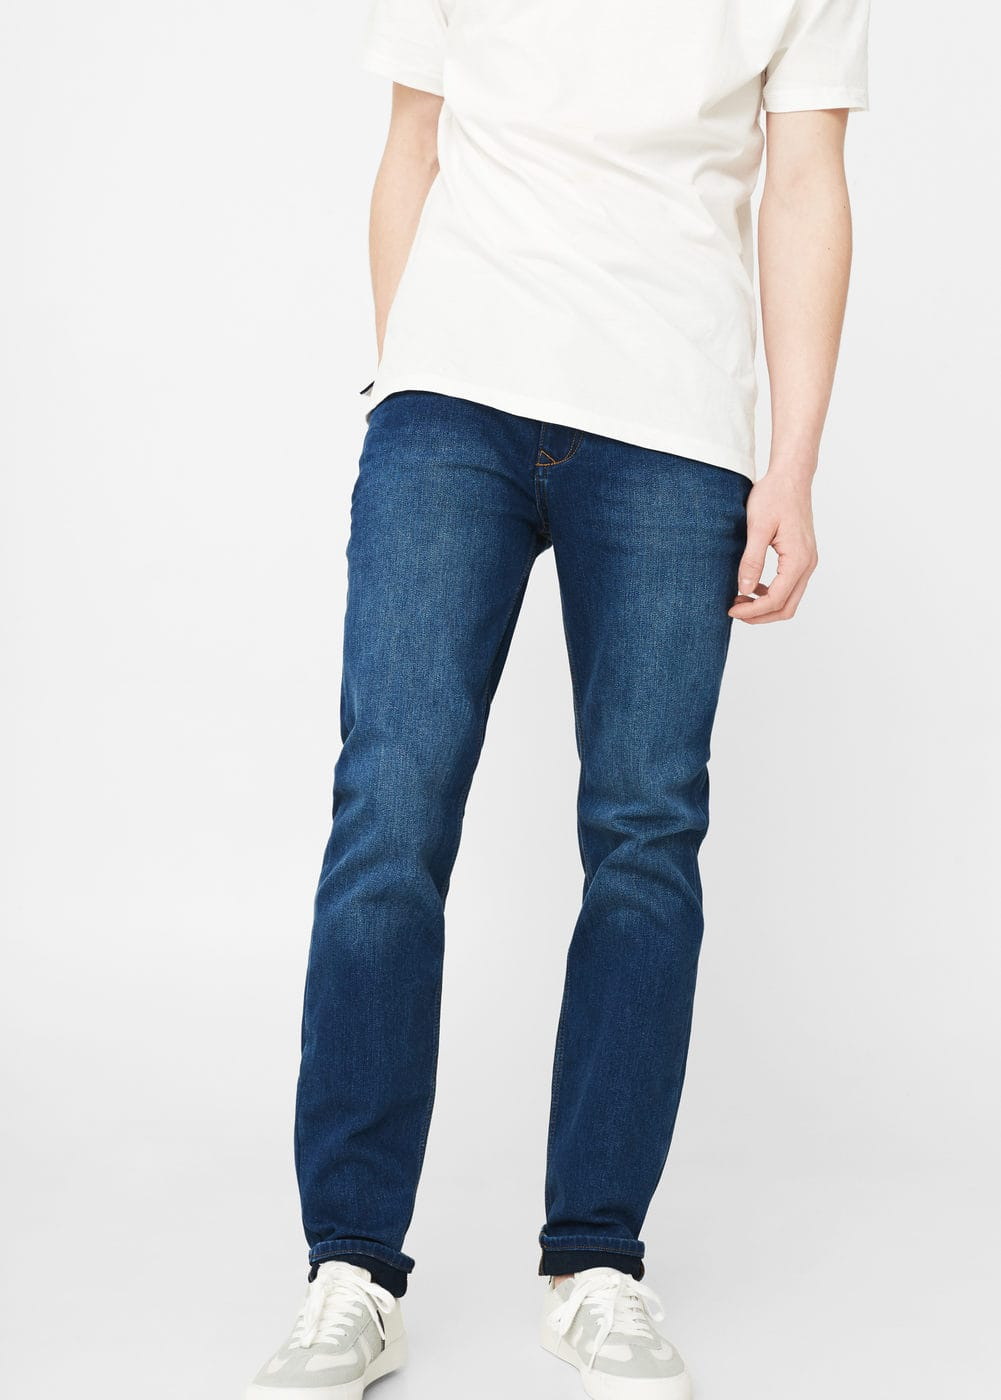 Jeans jan slim-fit lavado medio | MANGO